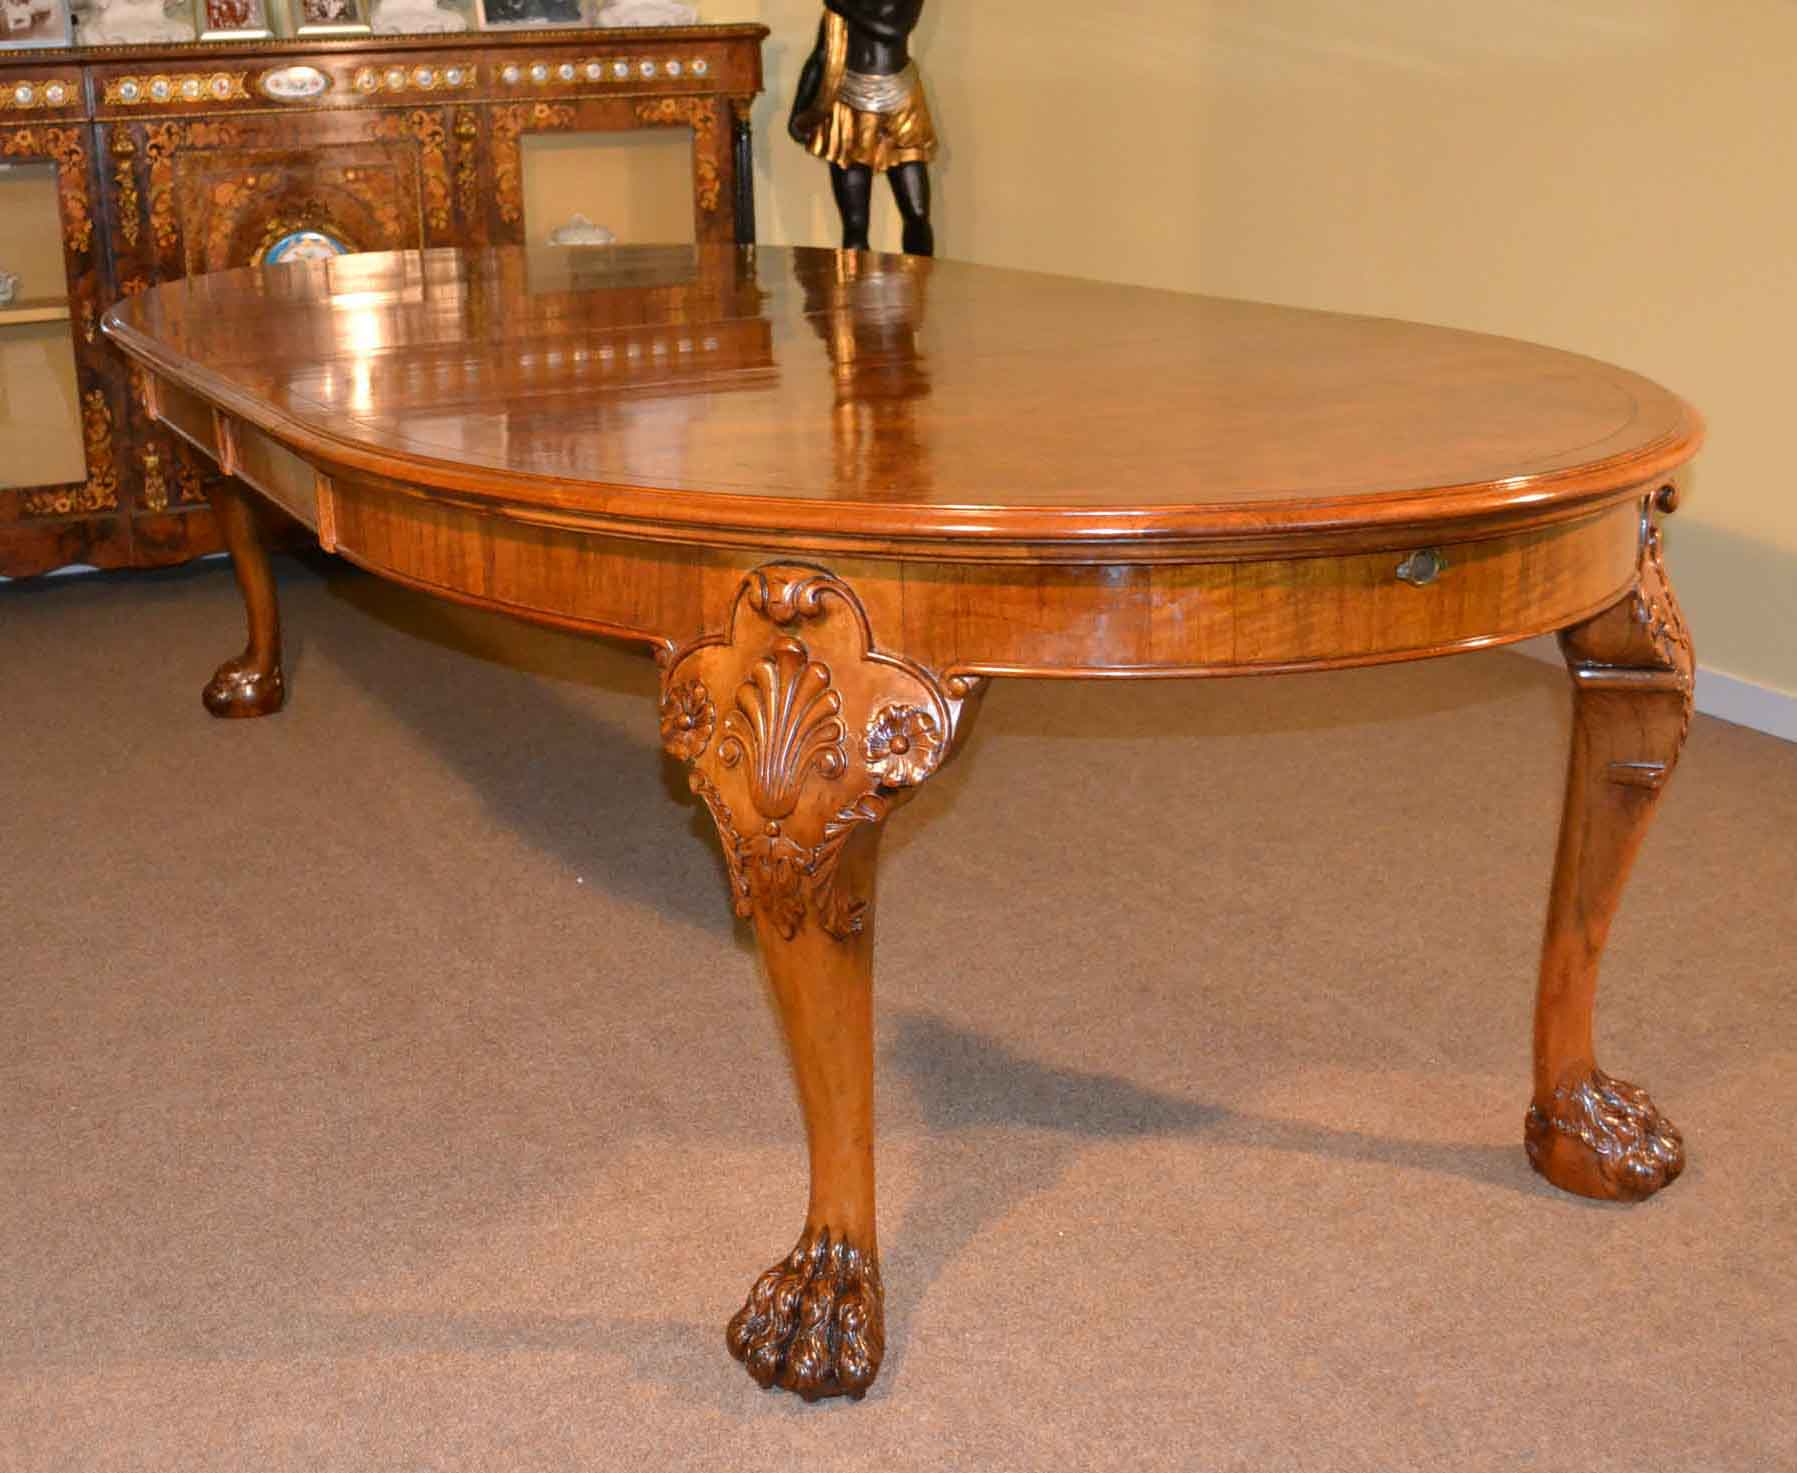 Antique bur walnut queen anne style dining table c1920 for Stile queen anne